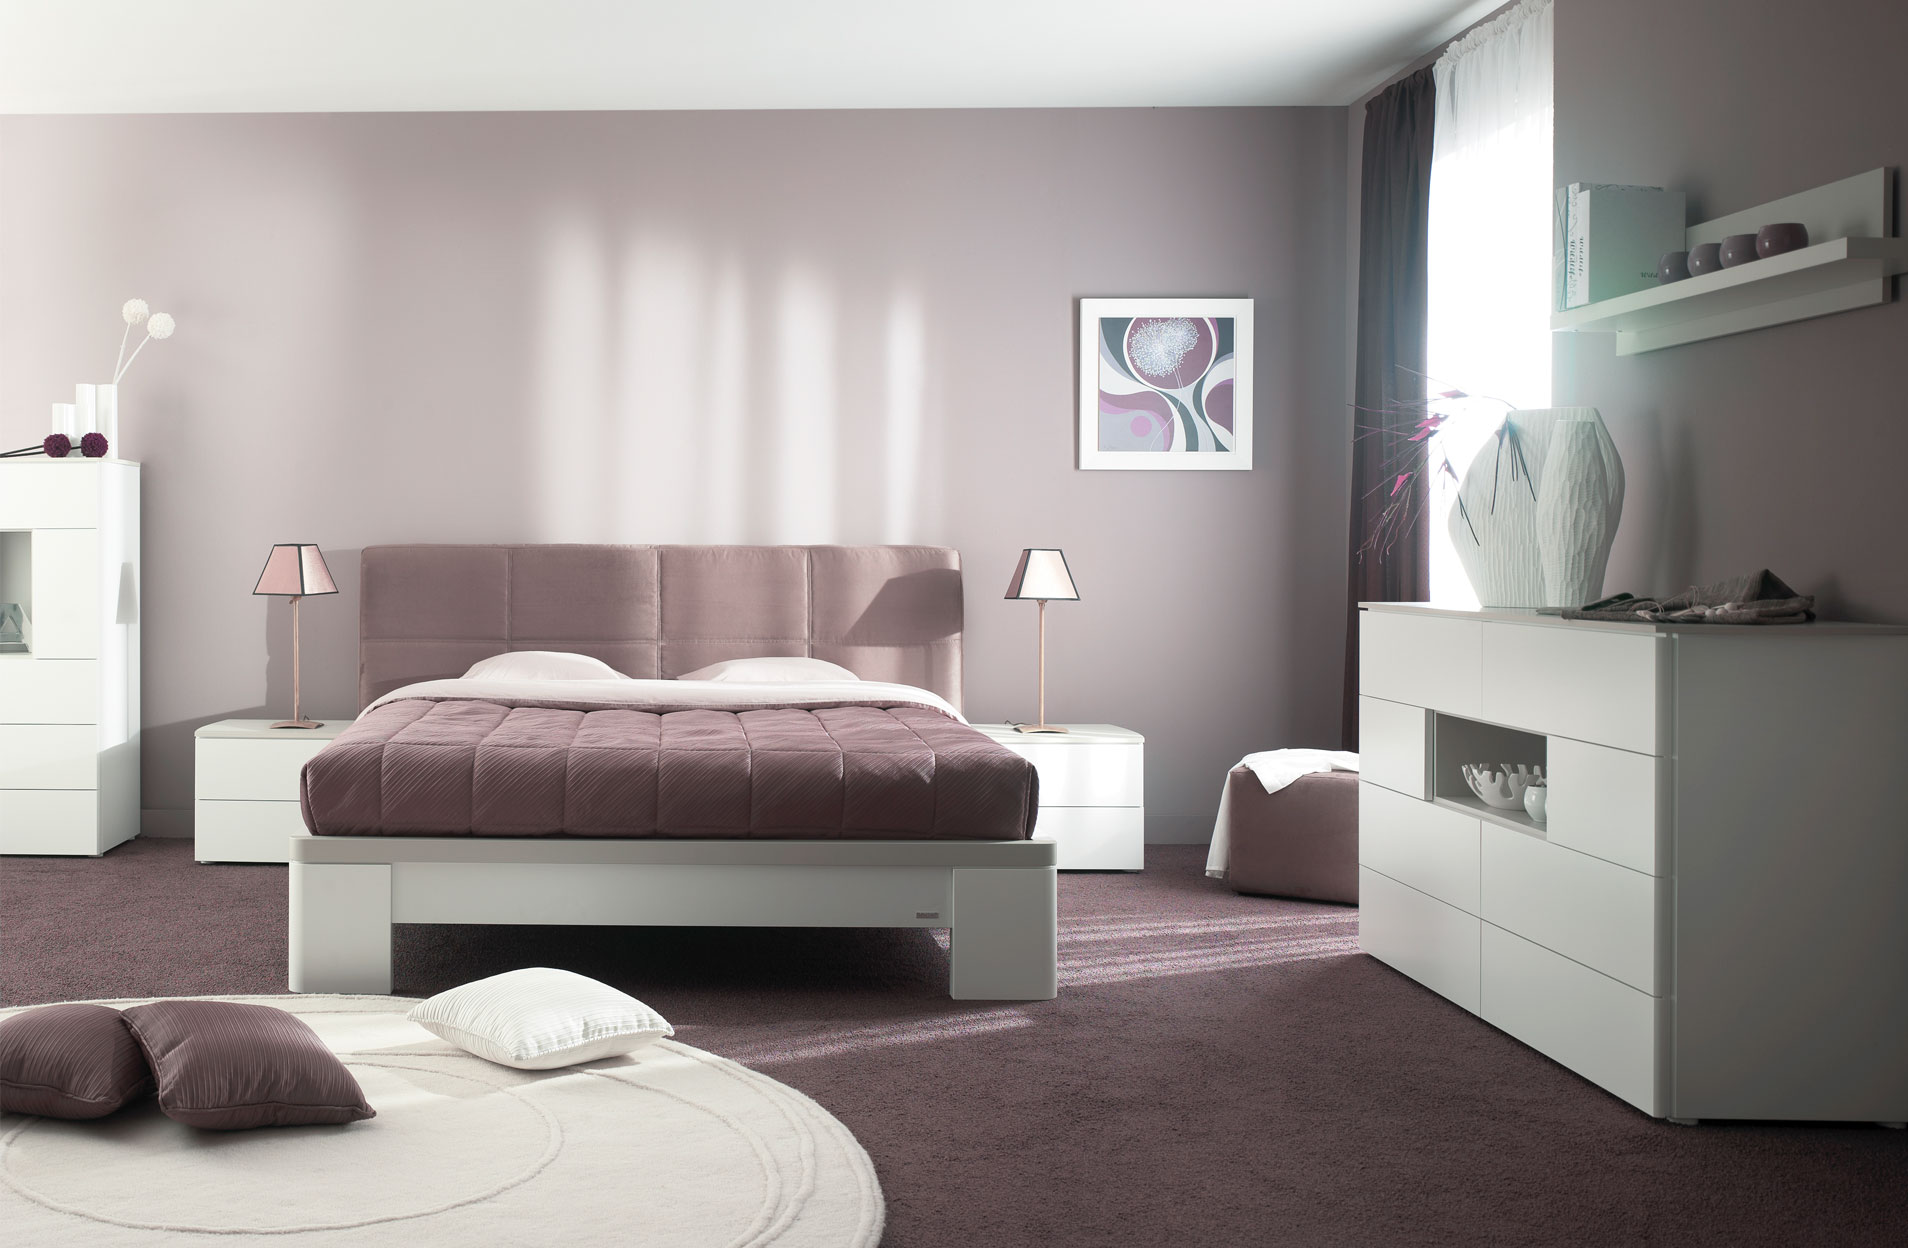 Inspiration d coration de chambre contemporaine gautier opalia for Decoration chambre adulte